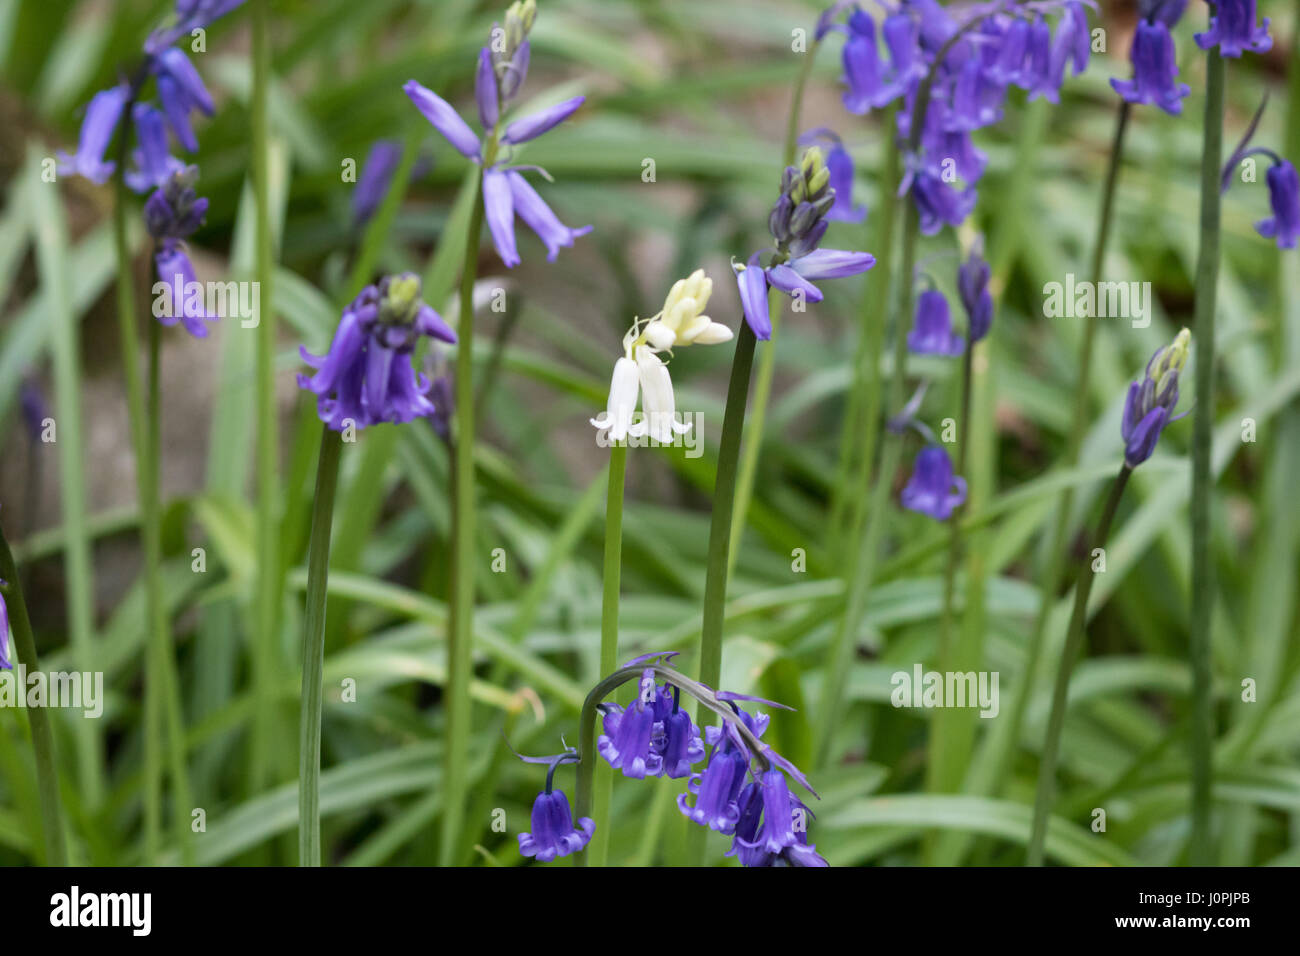 White bluebell flower surrounded by blue bluebell flowers stock white bluebell flower surrounded by blue bluebell flowers mightylinksfo